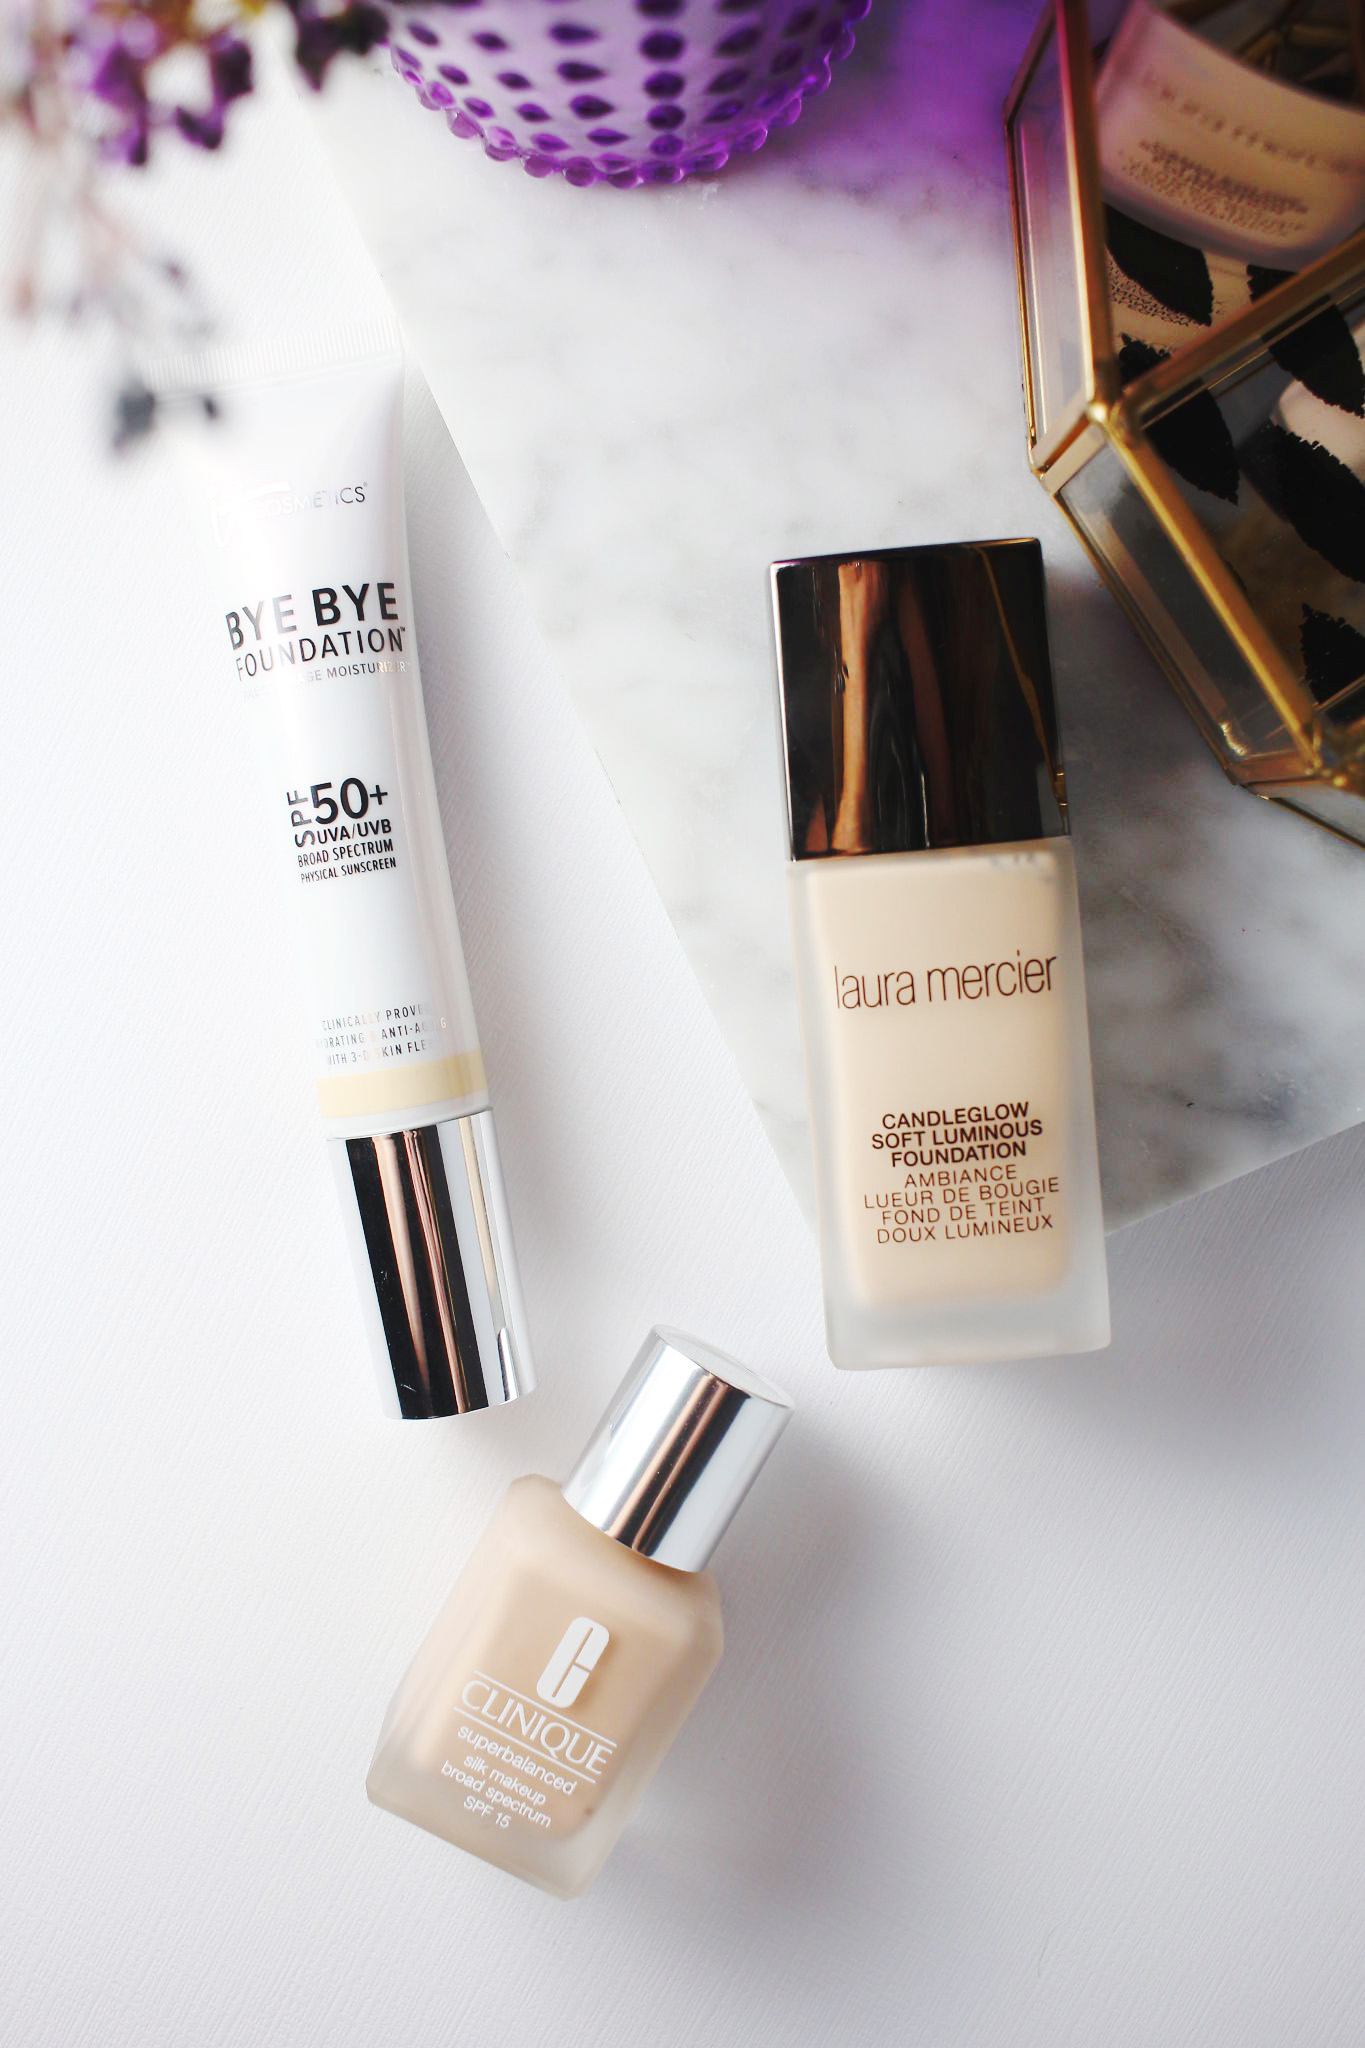 3 Foundations to try for fall- It Cosmetics Bye Bye Foundation, Clinique Superbalanced Silk, Laura Mercier Candleglow Soft Luminous Foundation